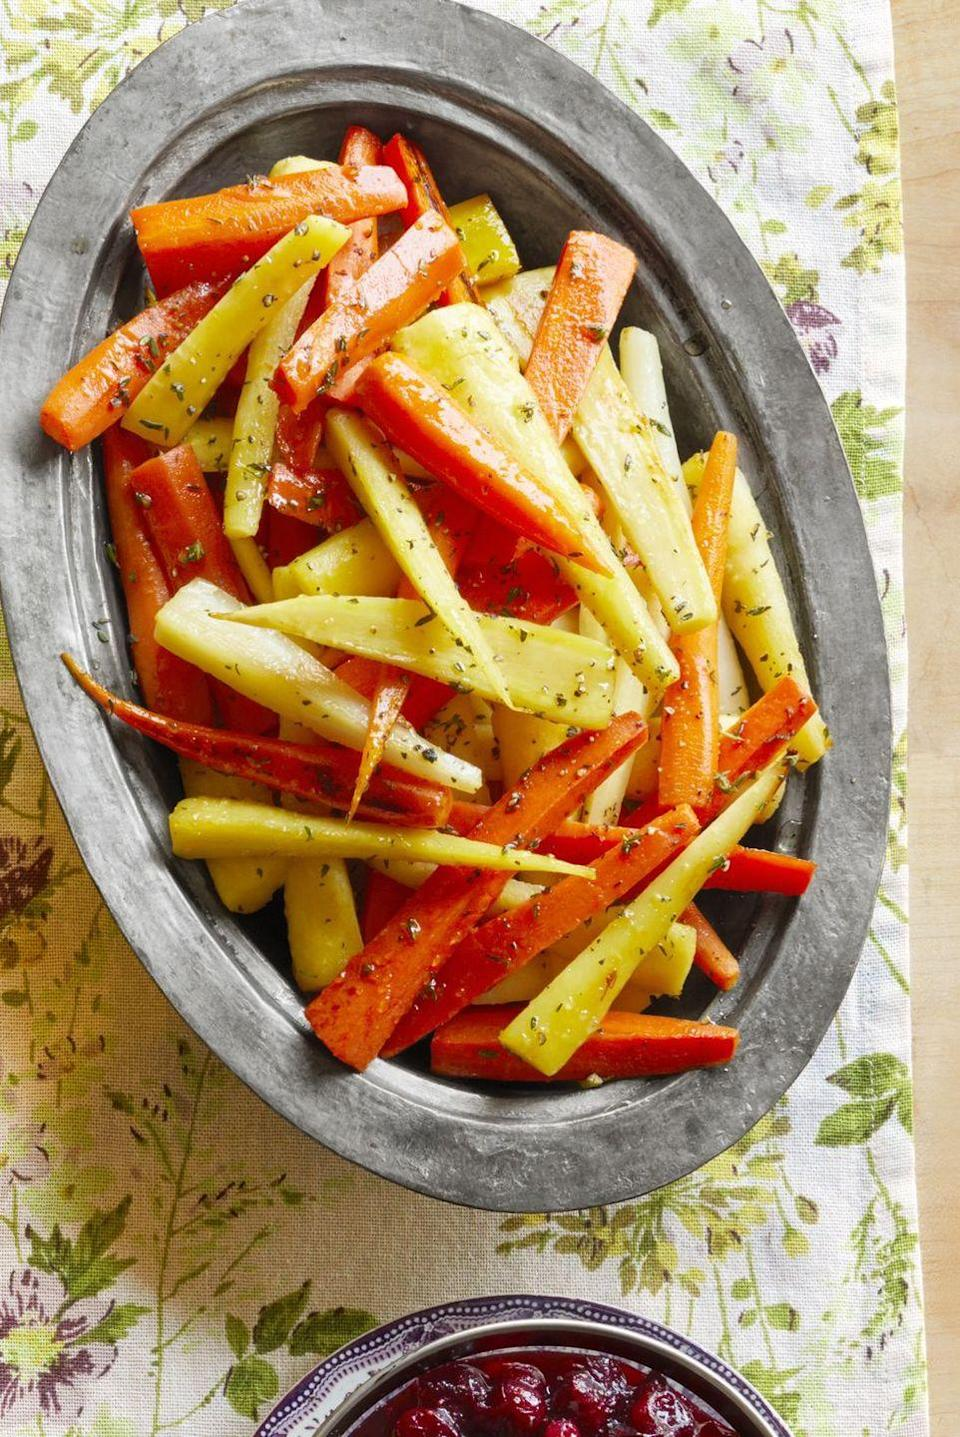 "<p>The combination of honey and butter gives these root vegetables a sweet glaze, while the fresh thyme adds a bit of savory goodness. It's an impressive and tasty side dish. </p><p><strong><a href=""https://www.thepioneerwoman.com/food-cooking/recipes/a33248884/honey-glazed-carrots-and-parsnips-recipe/"" rel=""nofollow noopener"" target=""_blank"" data-ylk=""slk:Get the recipe."" class=""link rapid-noclick-resp"">Get the recipe. </a></strong></p><p><strong><a class=""link rapid-noclick-resp"" href=""https://go.redirectingat.com?id=74968X1596630&url=https%3A%2F%2Fwww.walmart.com%2Fsearch%2F%3Fquery%3Dpioneer%2Bwoman%2Bskillets&sref=https%3A%2F%2Fwww.thepioneerwoman.com%2Ffood-cooking%2Fmeals-menus%2Fg35256361%2Feaster-side-dishes%2F"" rel=""nofollow noopener"" target=""_blank"" data-ylk=""slk:SHOP SKILLETS"">SHOP SKILLETS</a><br></strong></p>"